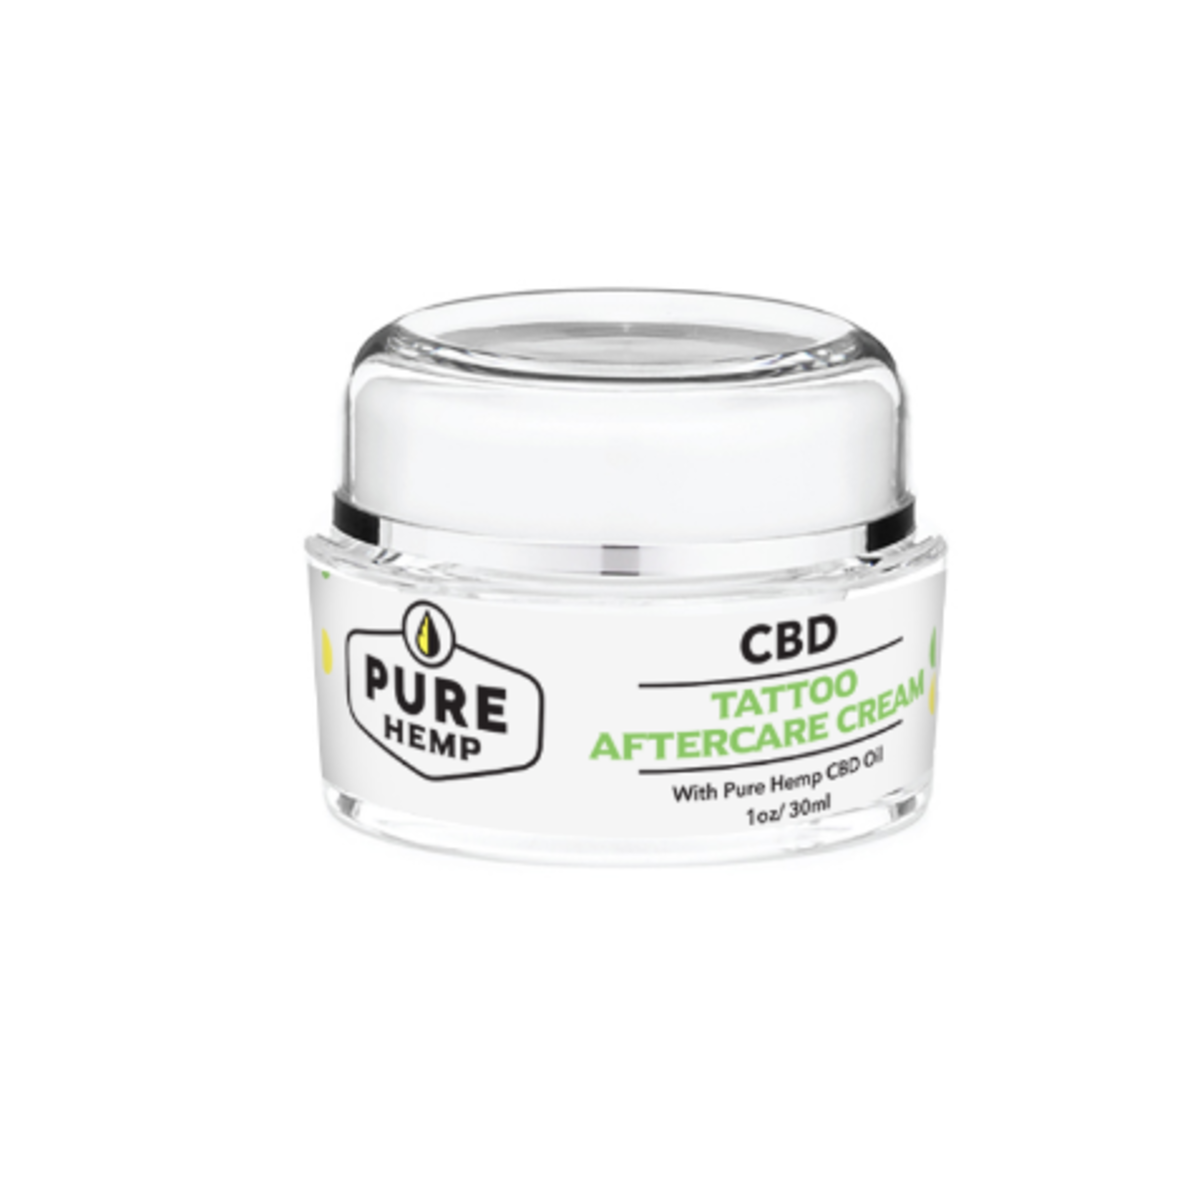 CBDTattooCream